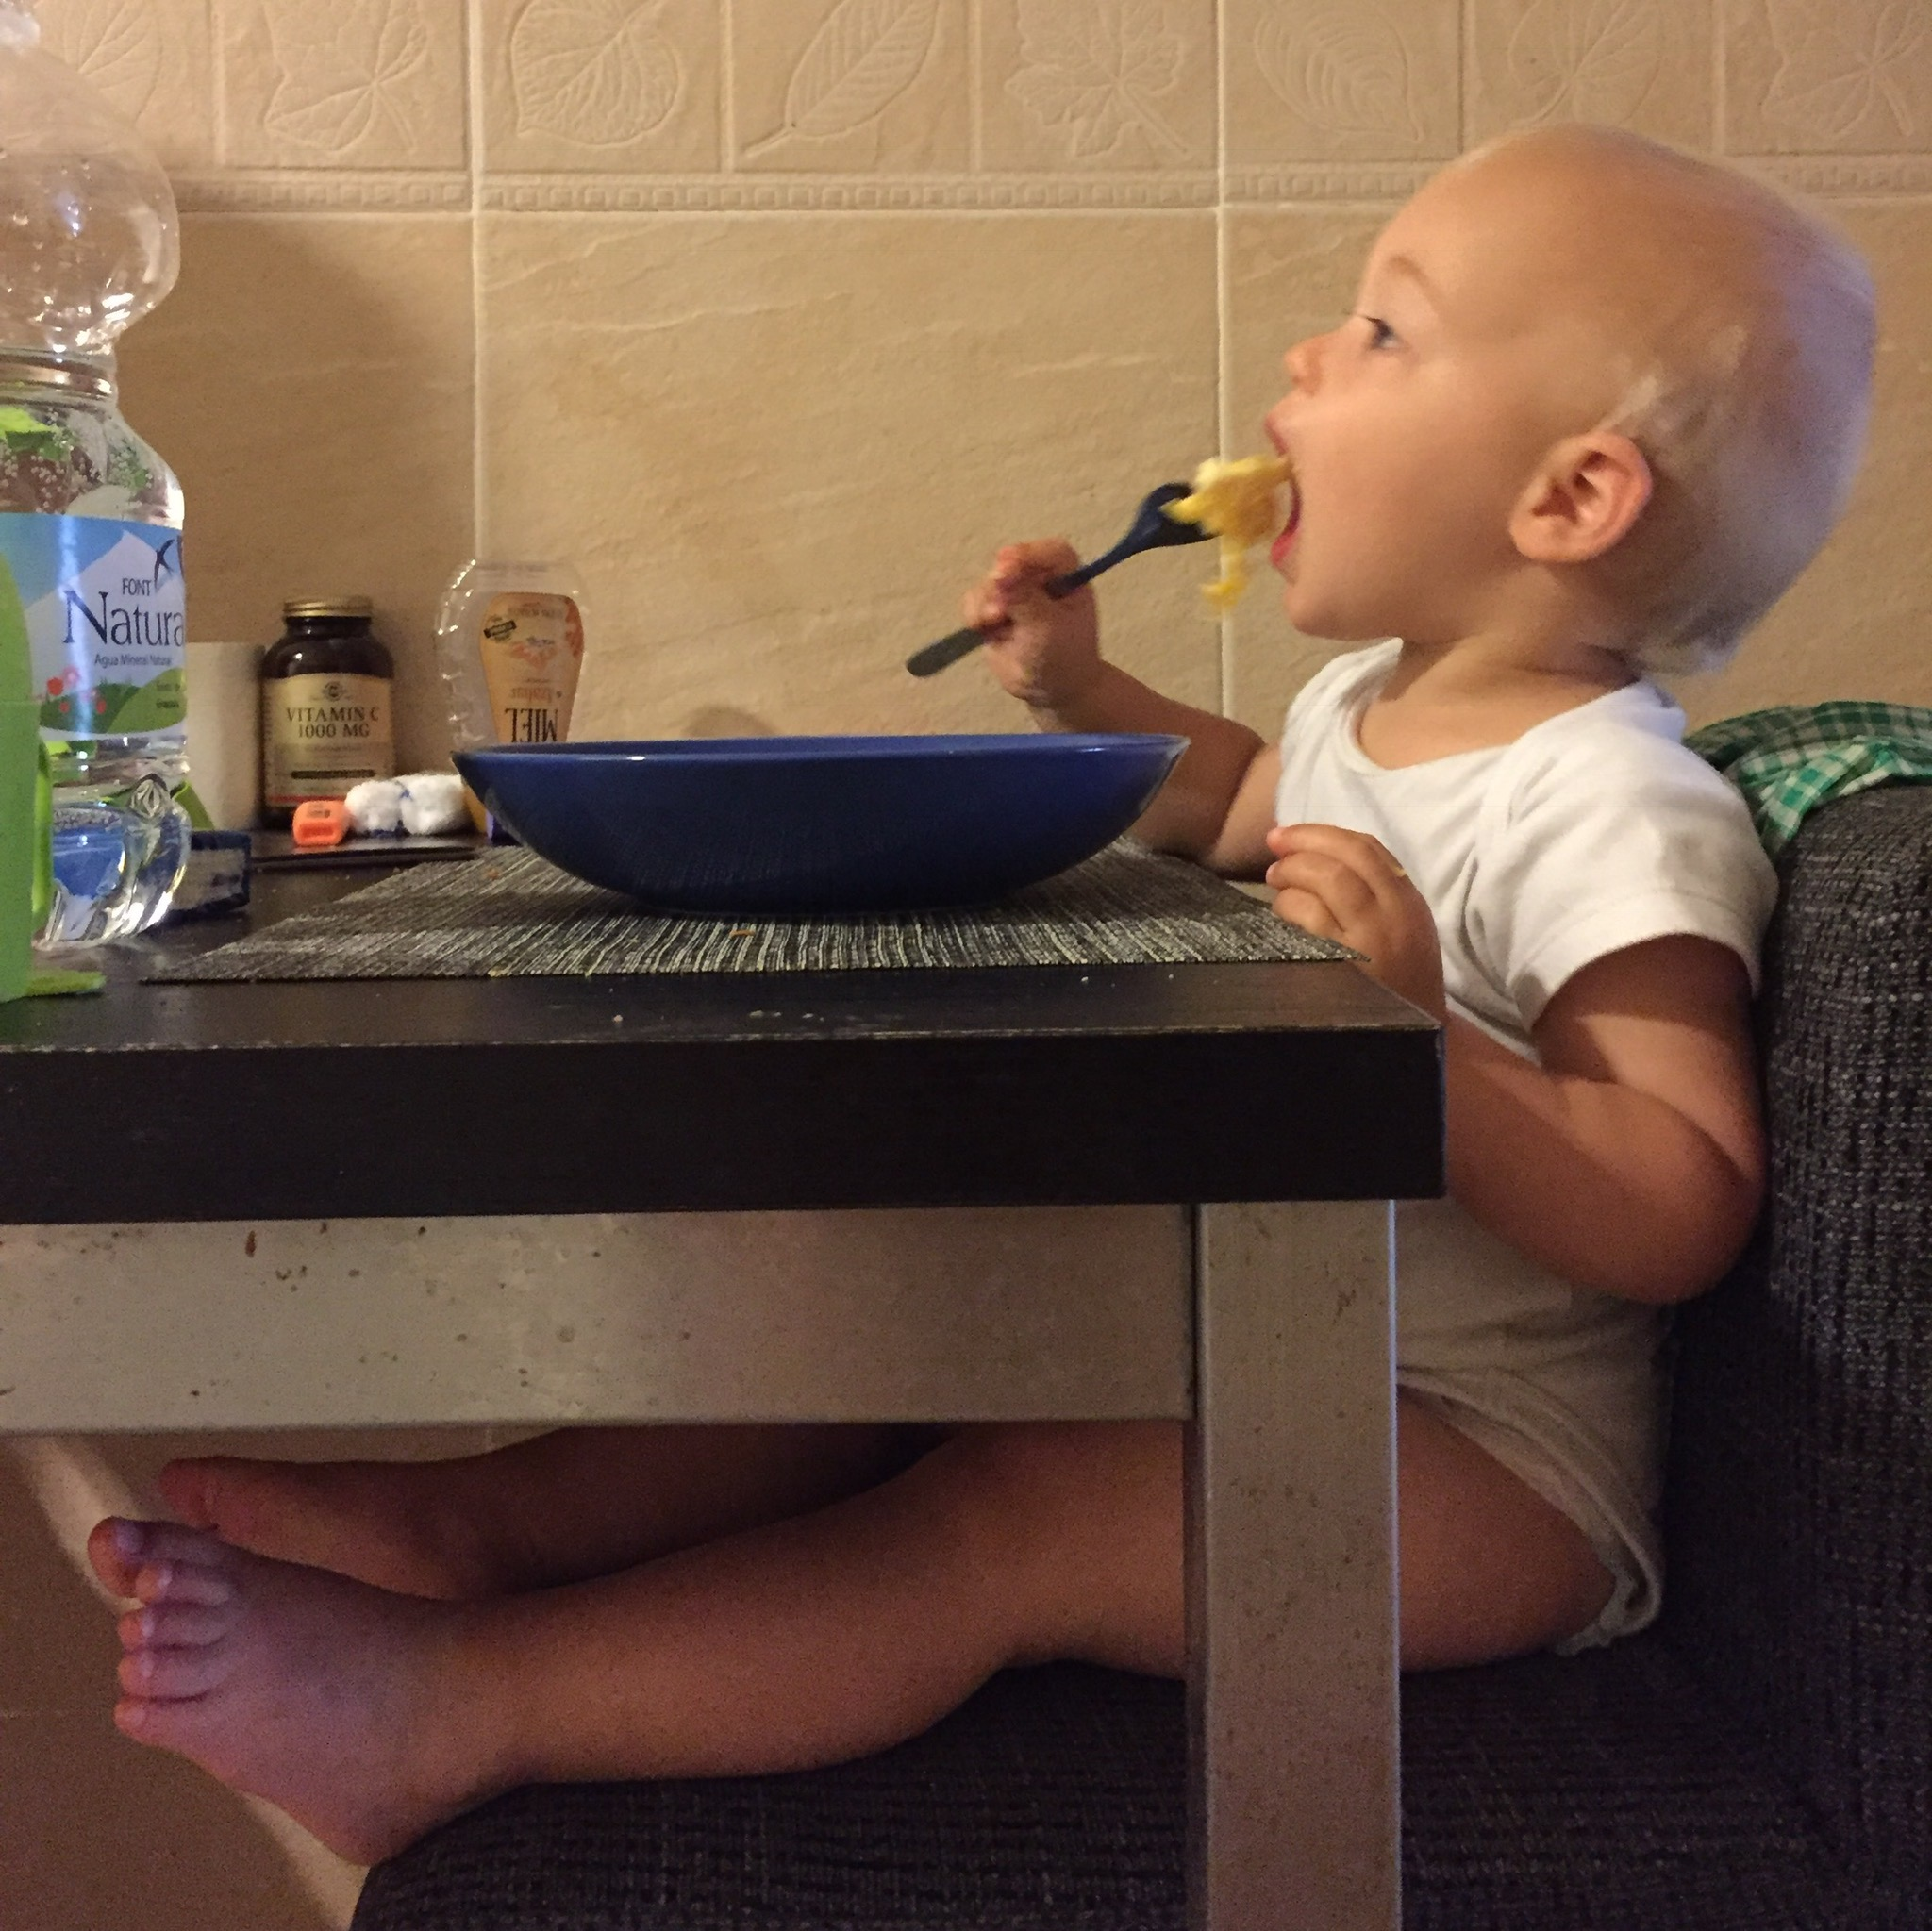 Oliver eating eggs with fork at 15 months